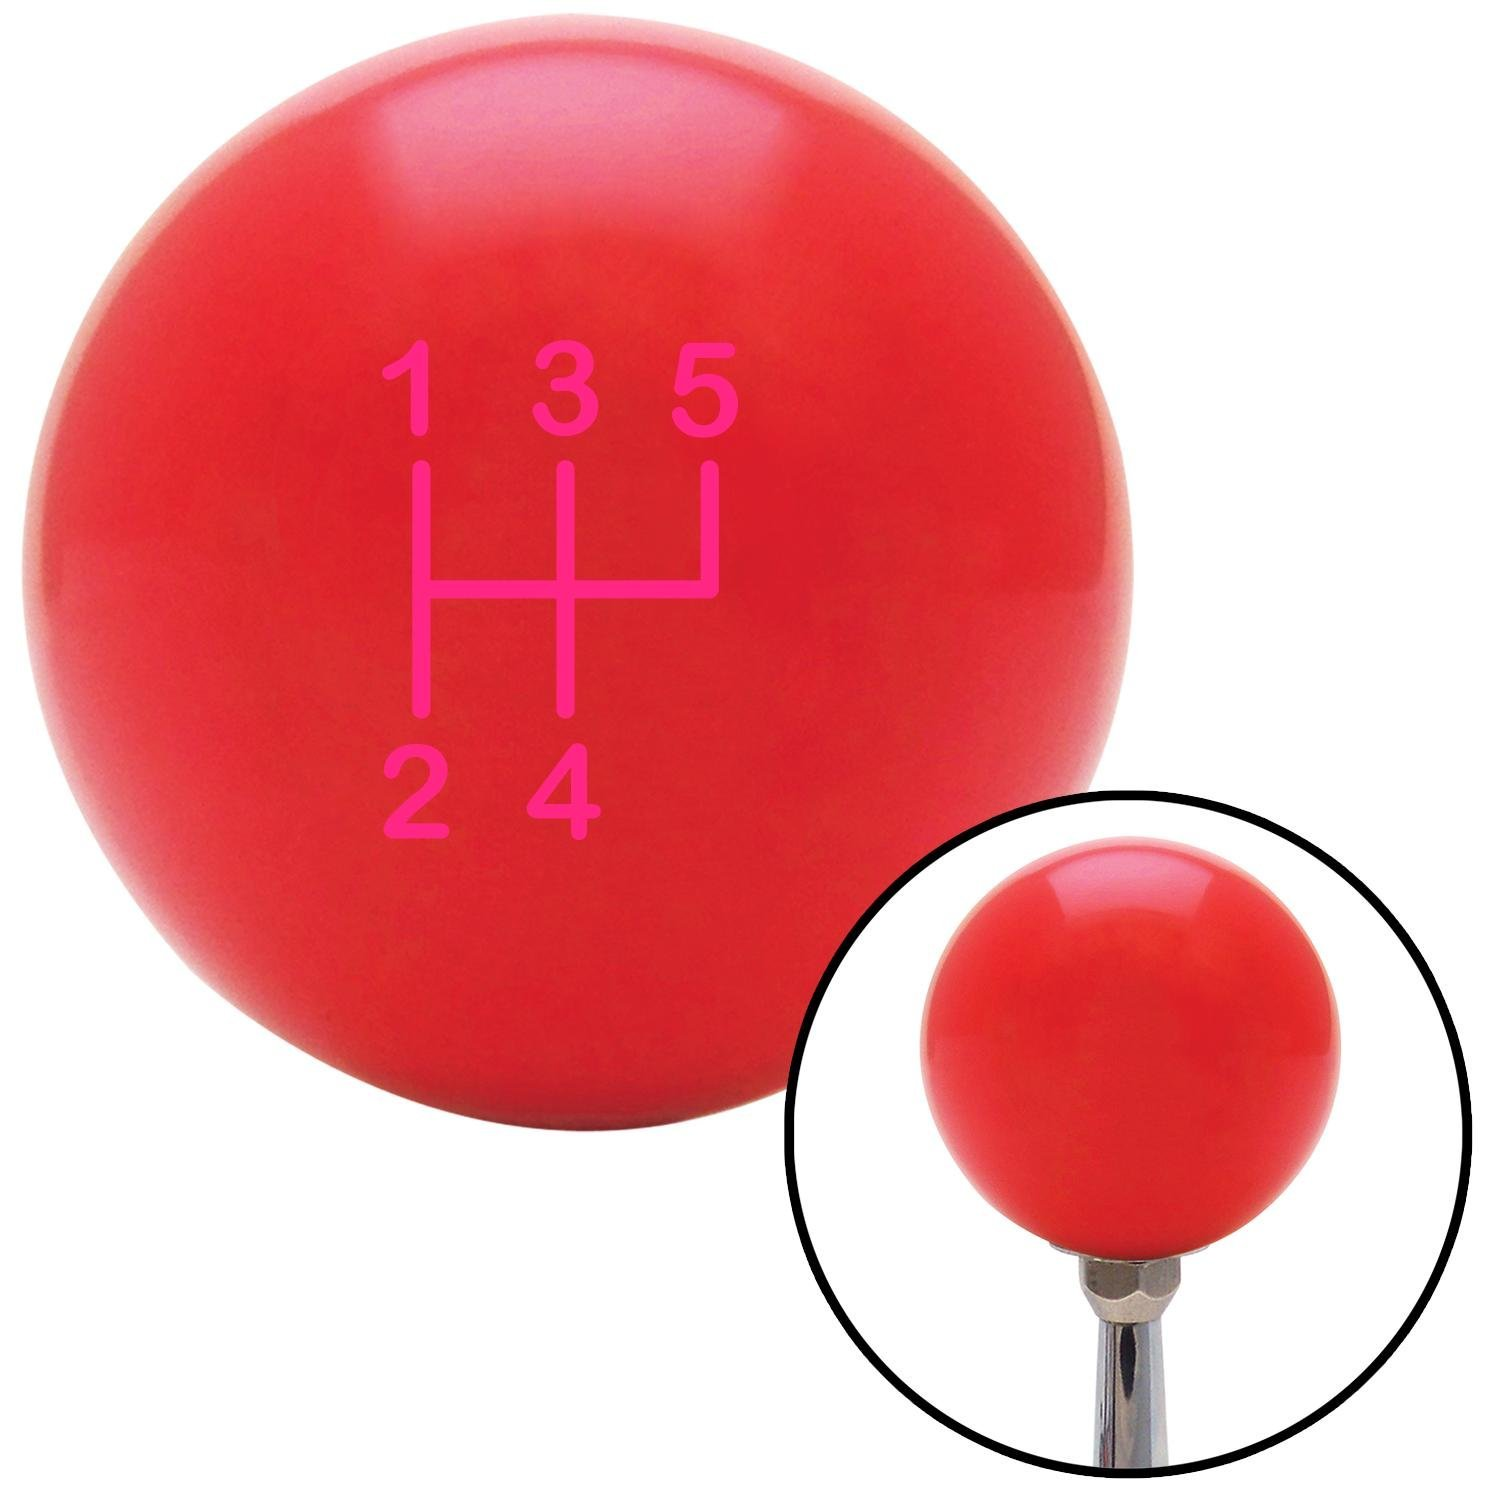 Pink Shift Pattern 49n American Shifter 100288 Red Shift Knob with M16 x 1.5 Insert